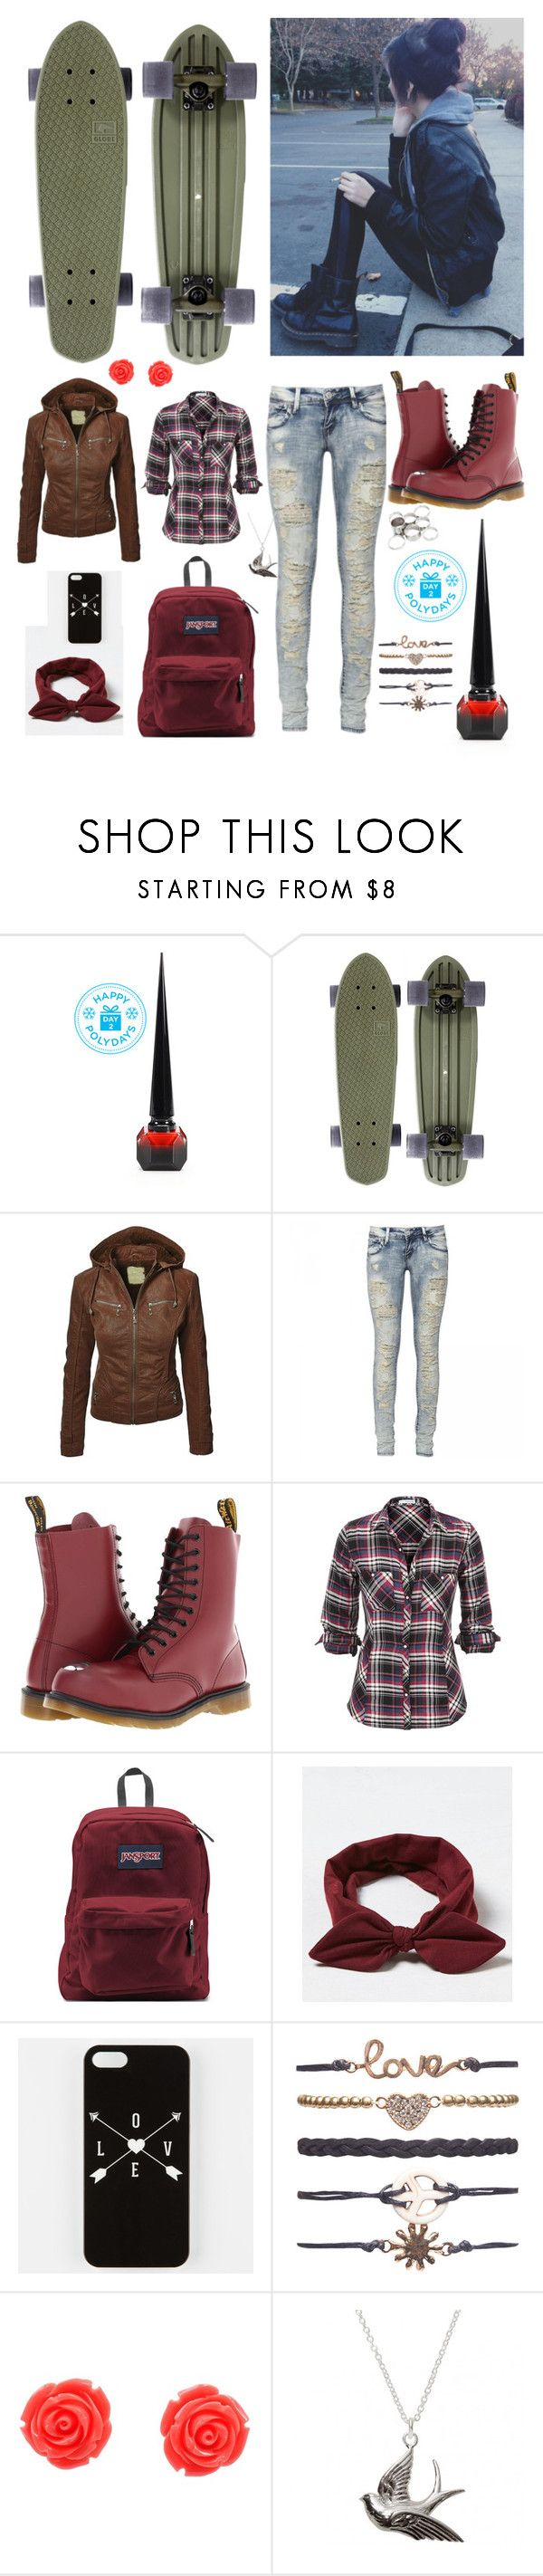 """Danny Smith"" by nationalnerd ❤ liked on Polyvore featuring Christian Louboutin, Dr. Martens, JanSport, American Eagle Outfitters, Wet Seal and Missguided"